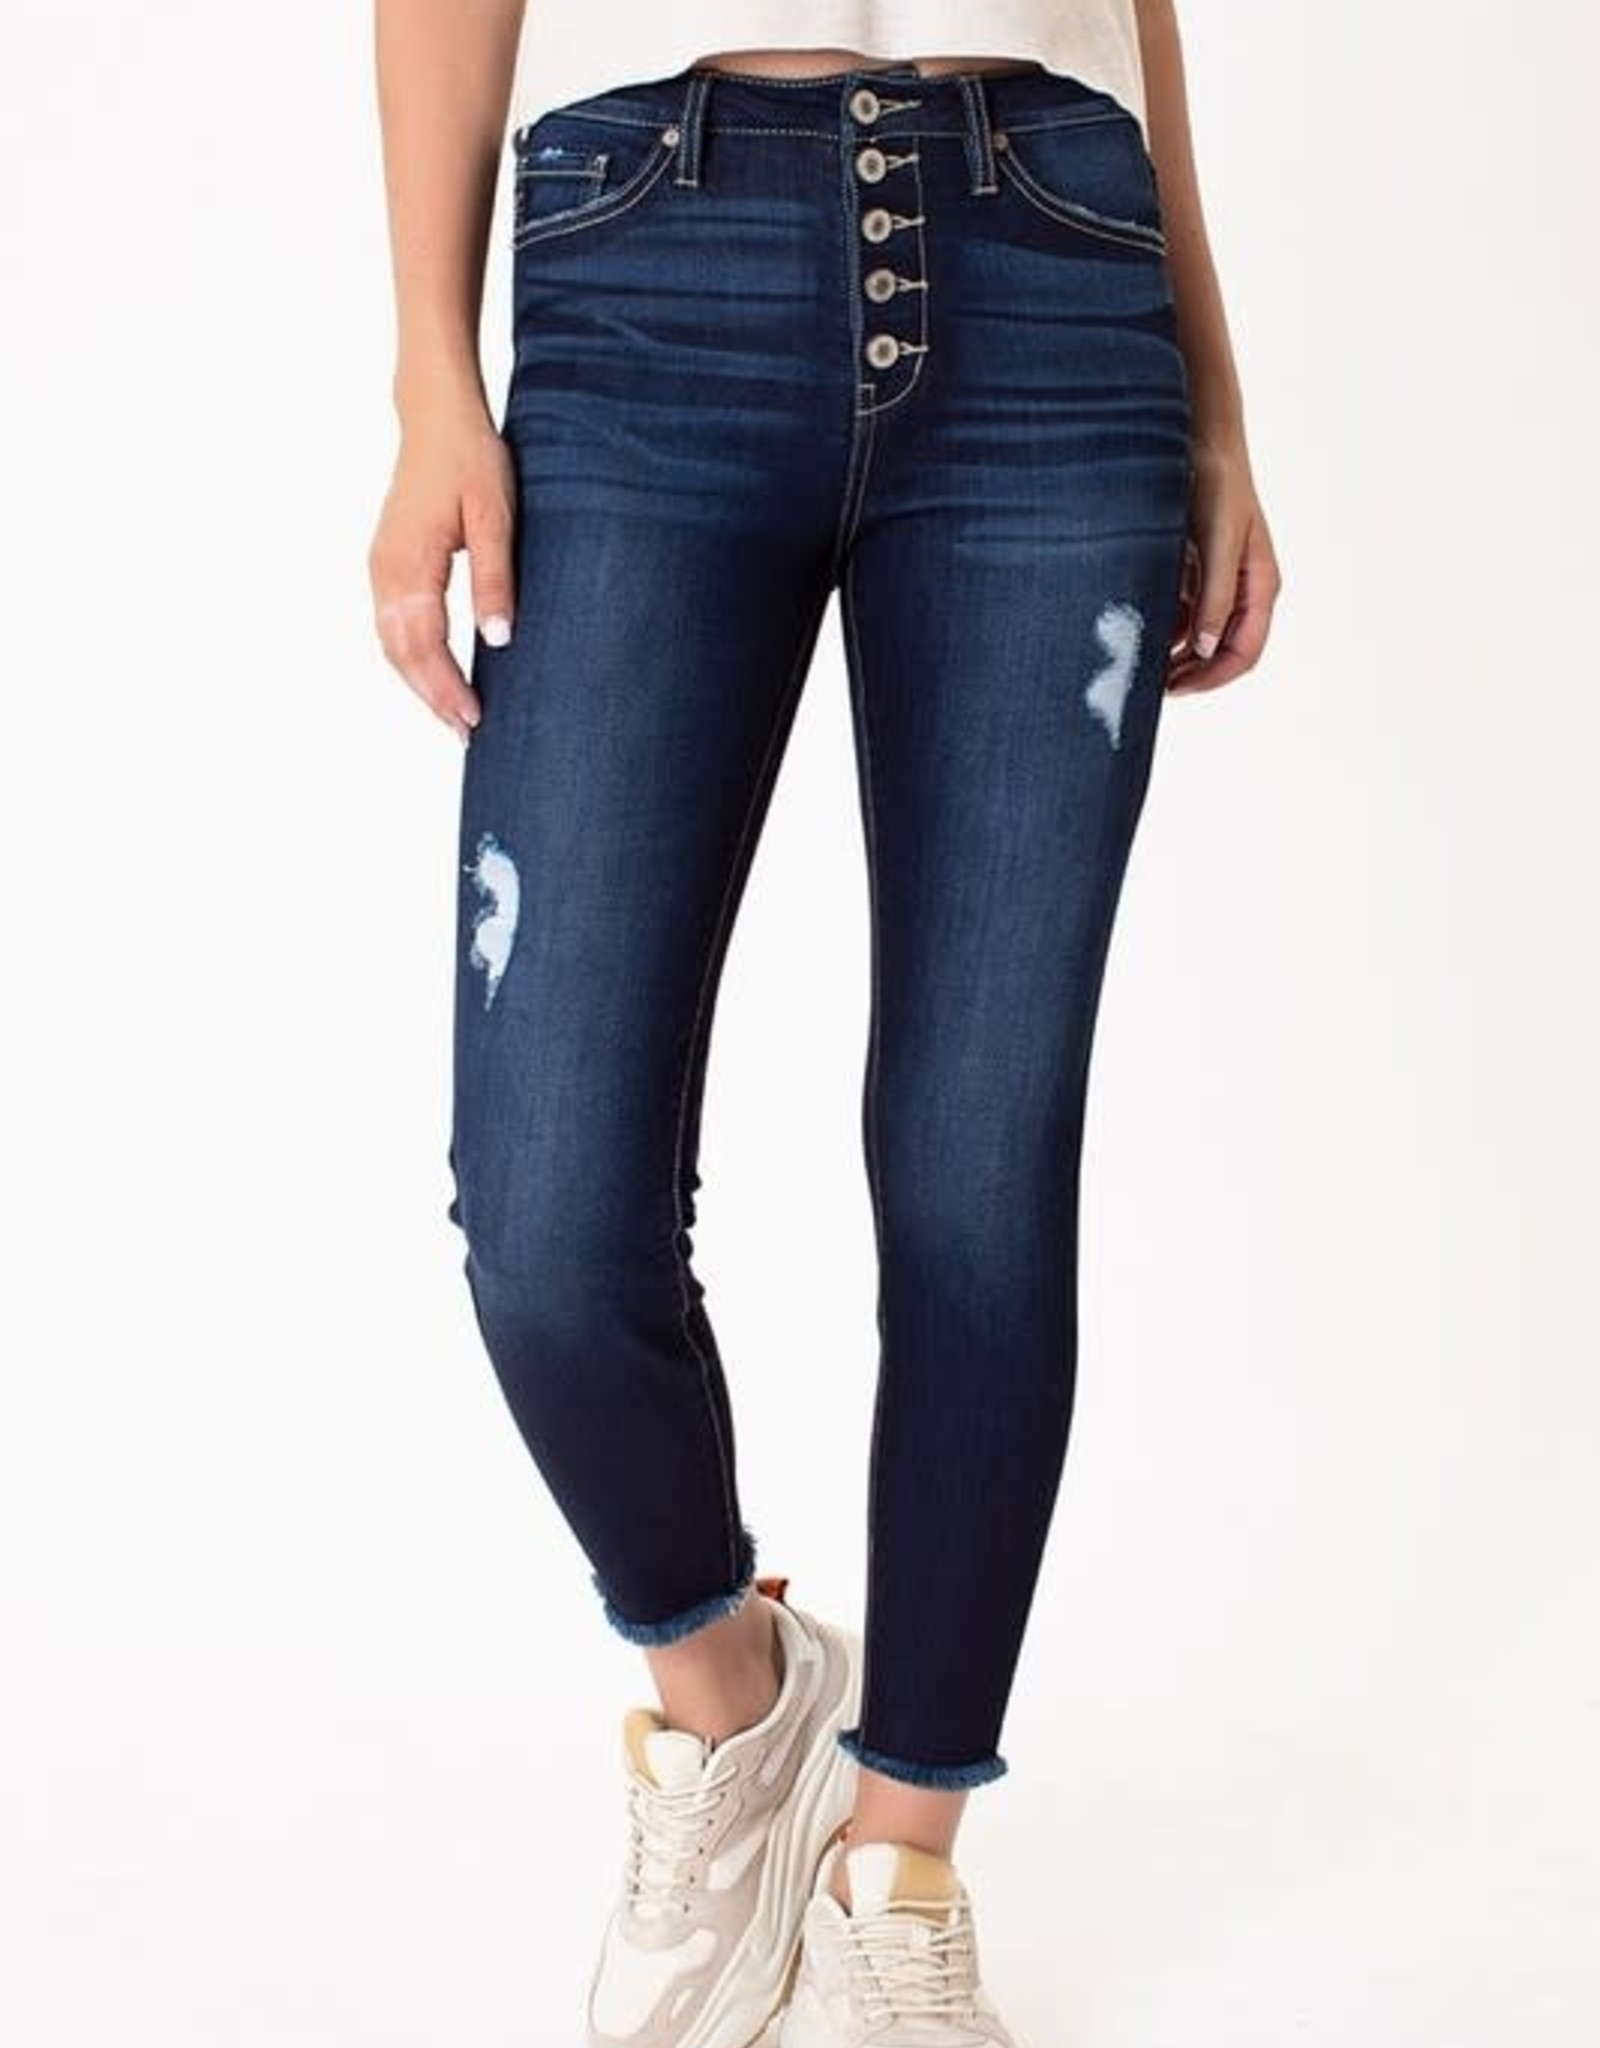 Kancan Dark Wash High Rise Button Fly Ankle Skinny Jeans w/Fray Hem